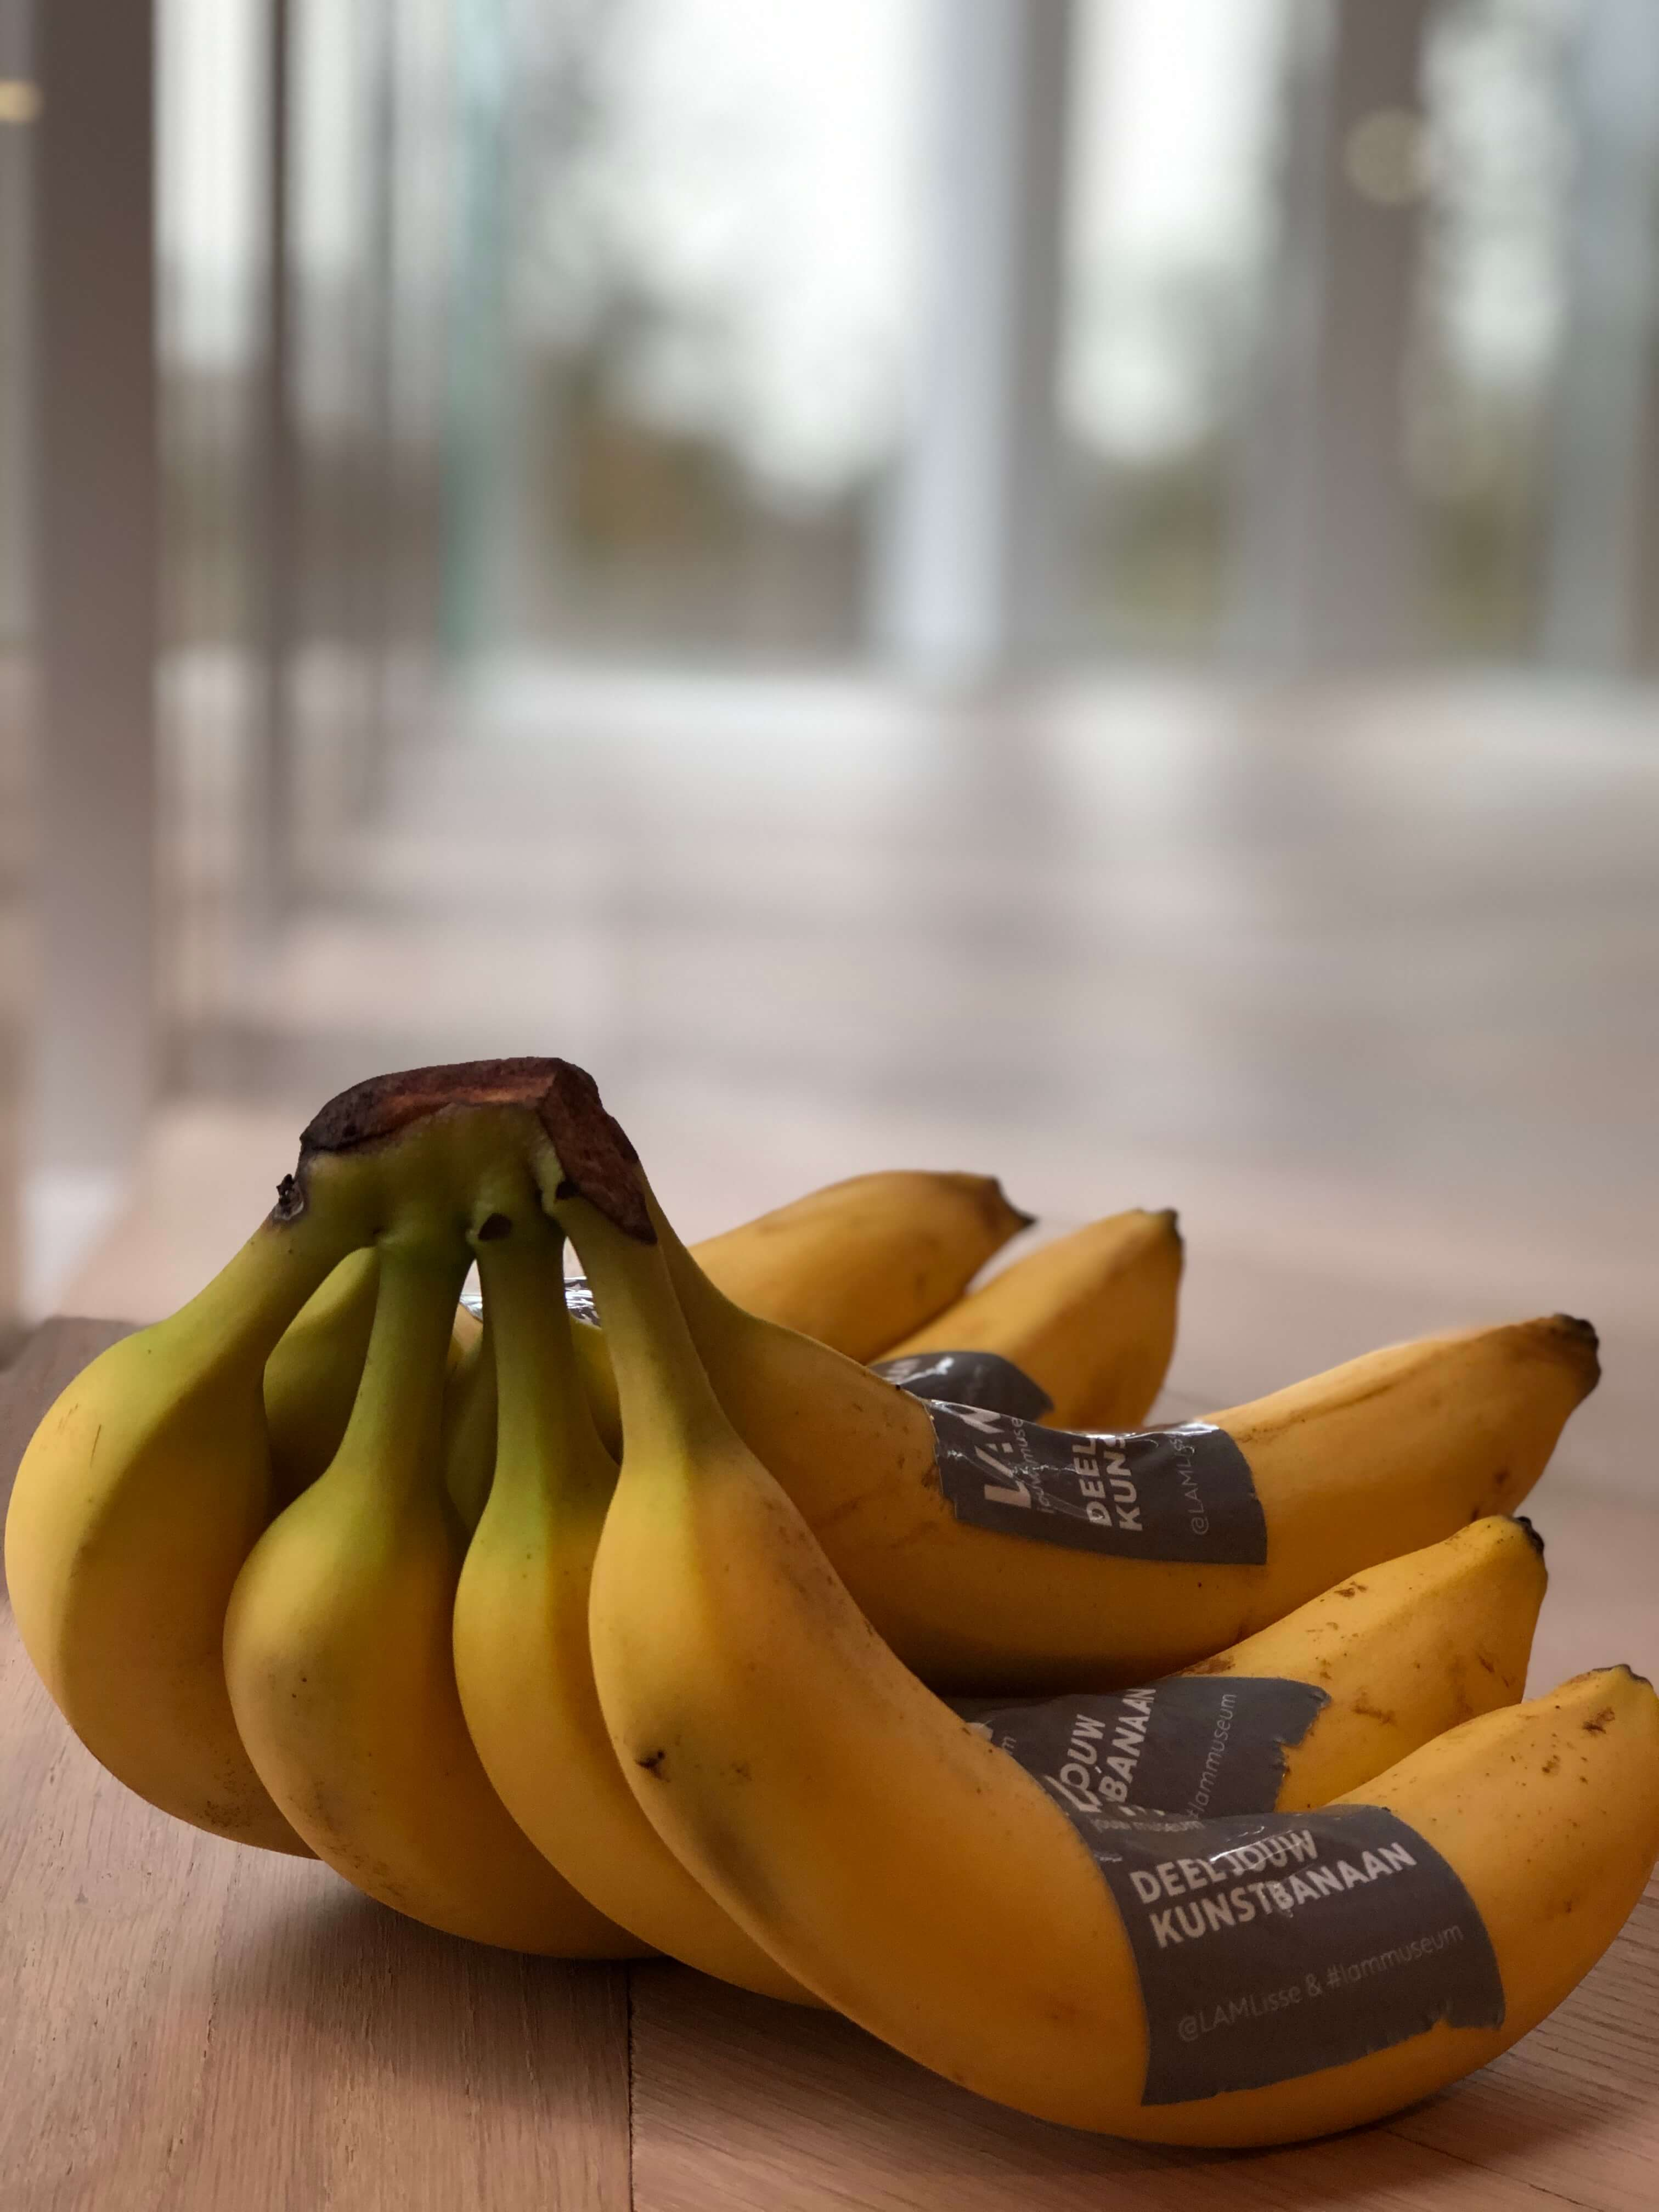 Our 2019: the banana